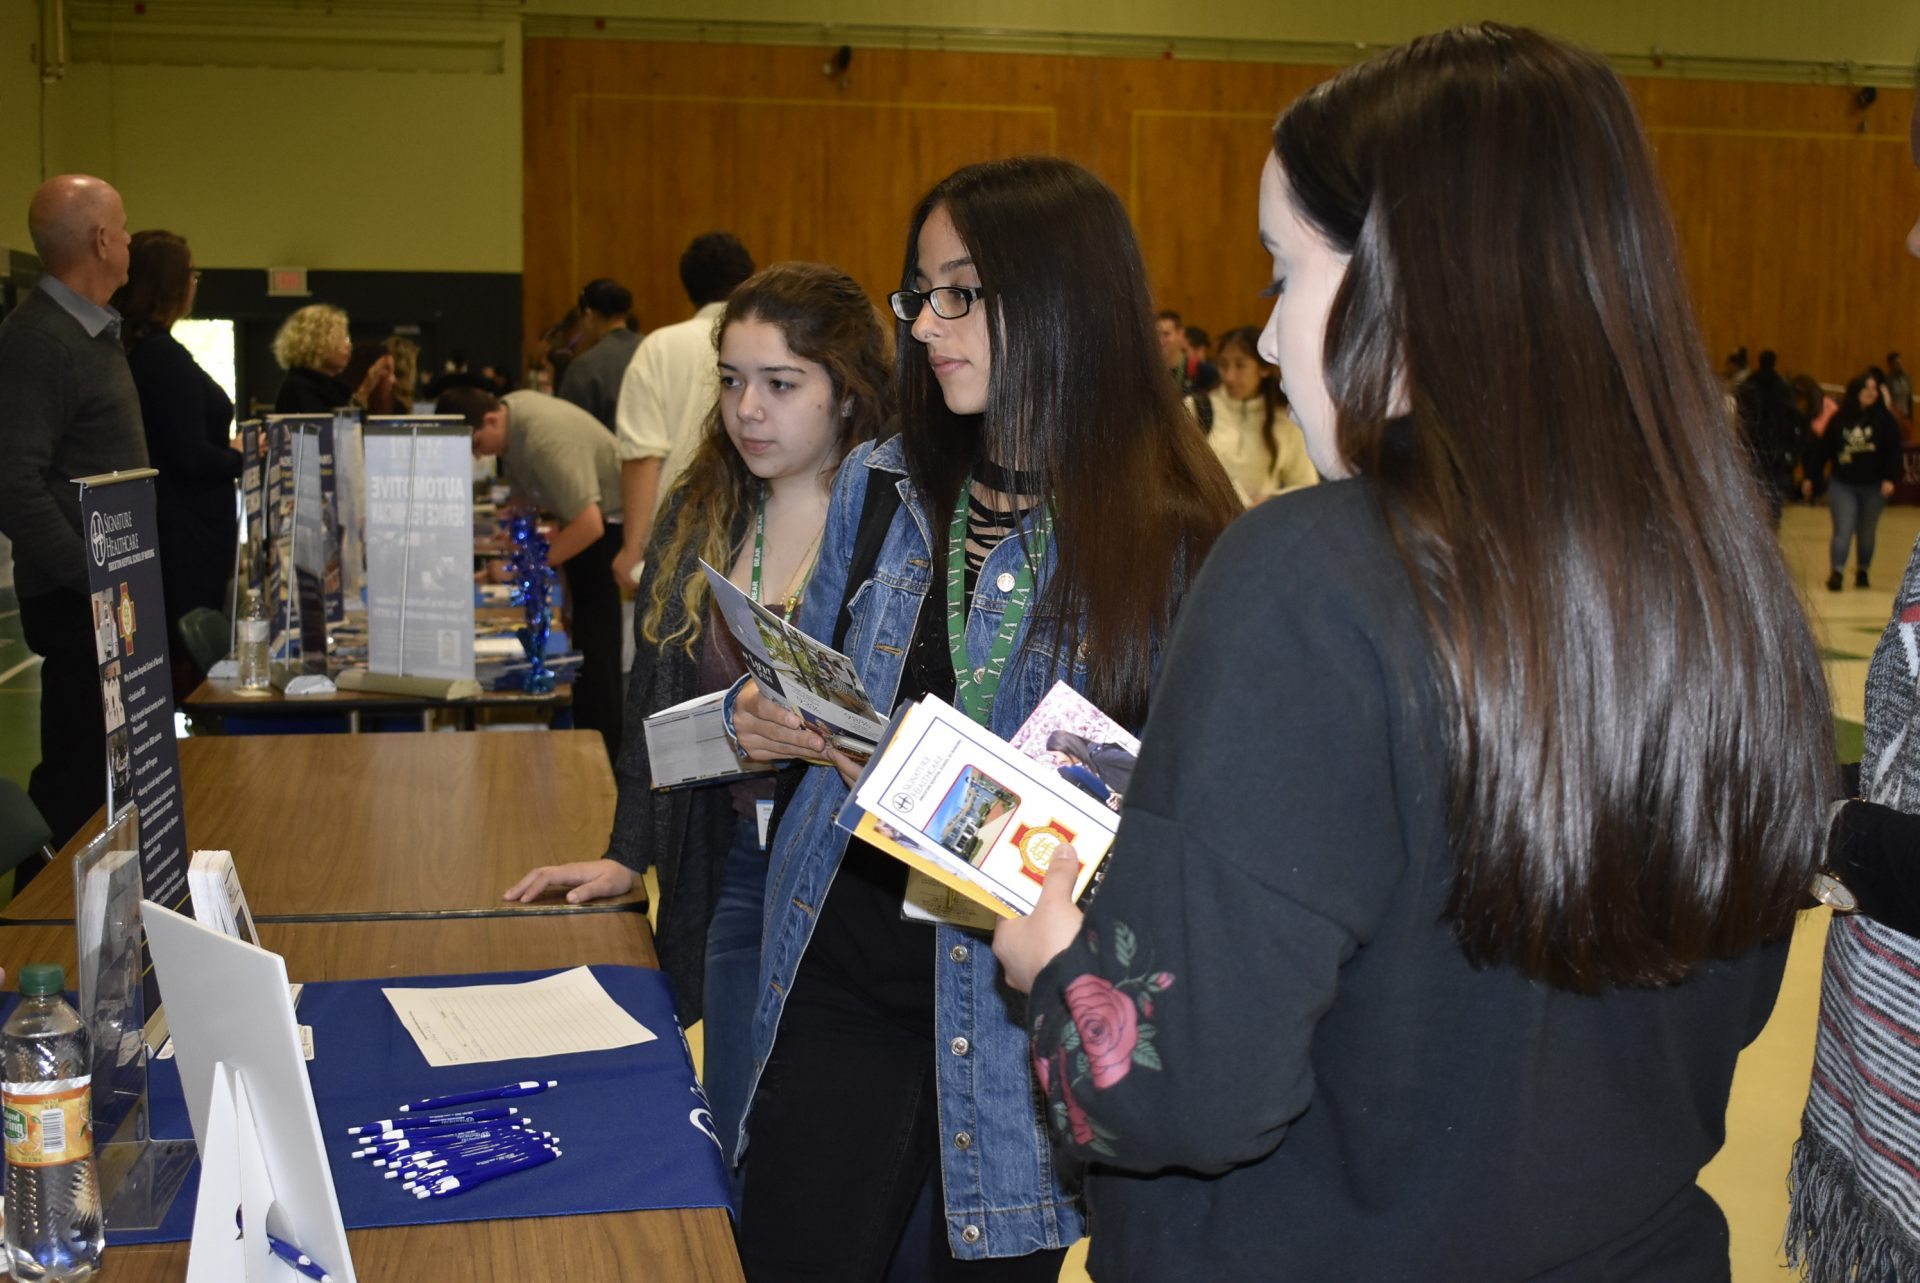 Students Looking At A College's Mini-Poster